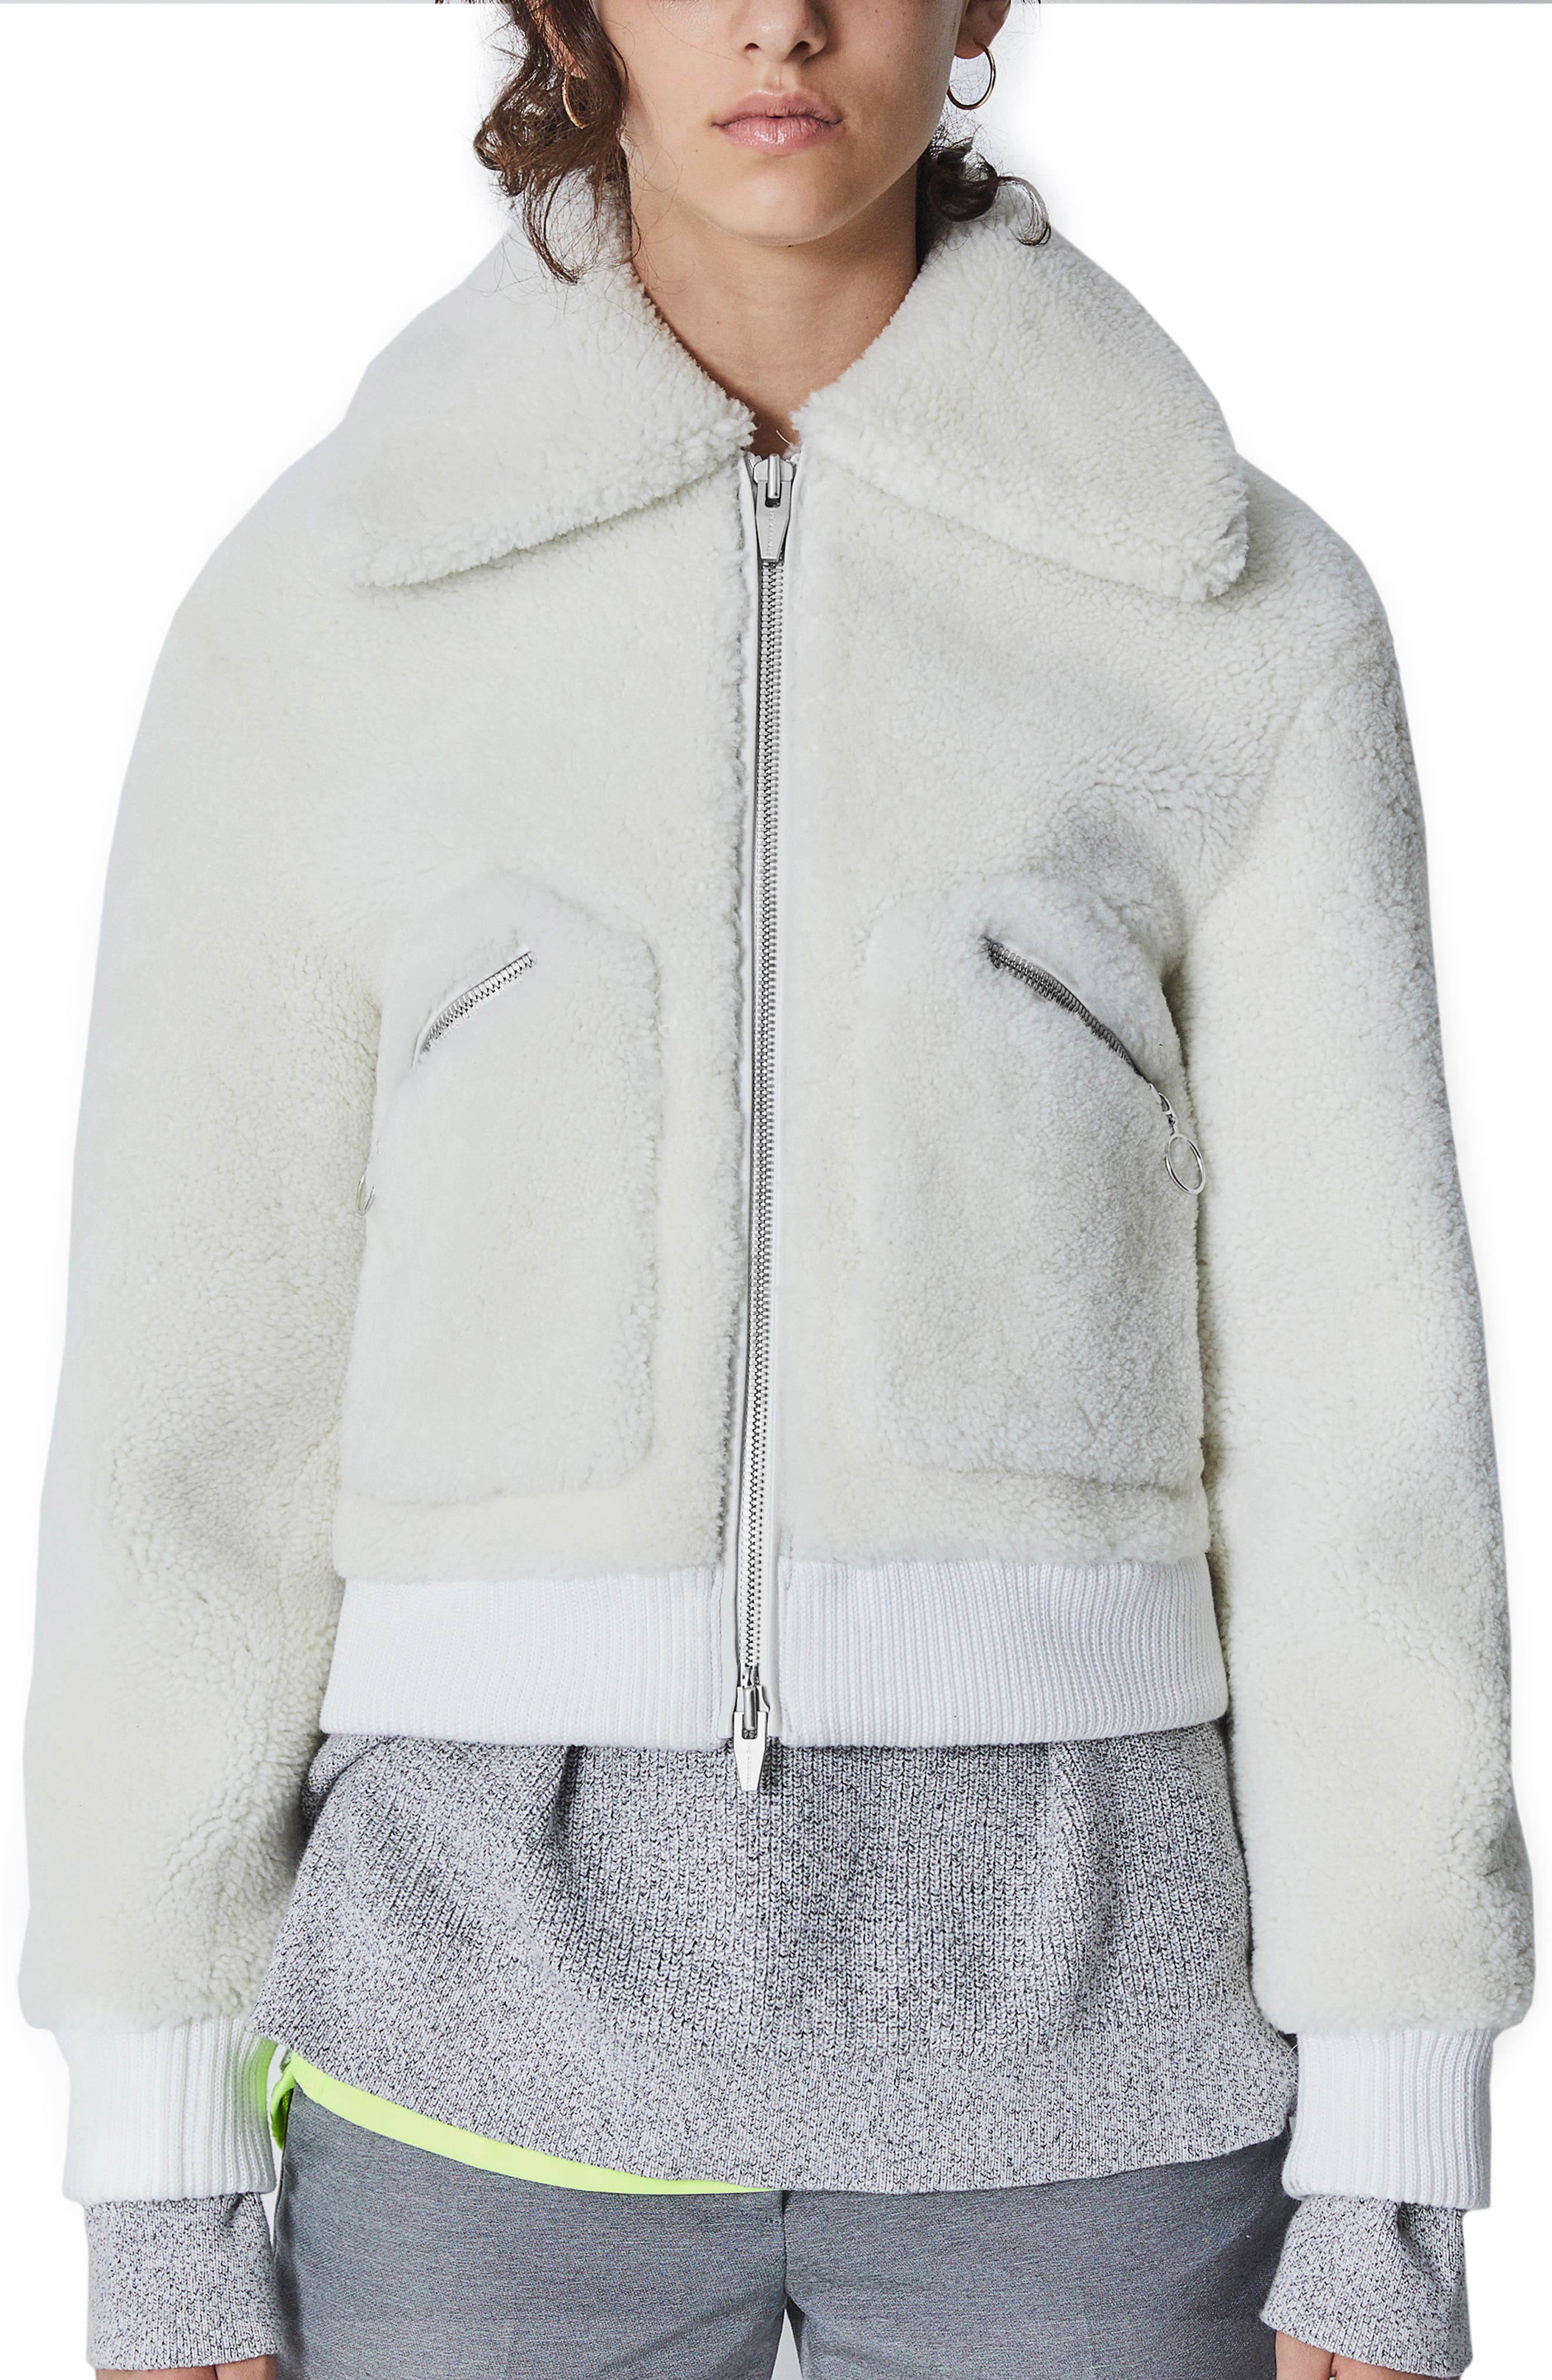 THE ARRIVALS Kala Genuine Shearling Bomber Jacket in Stone